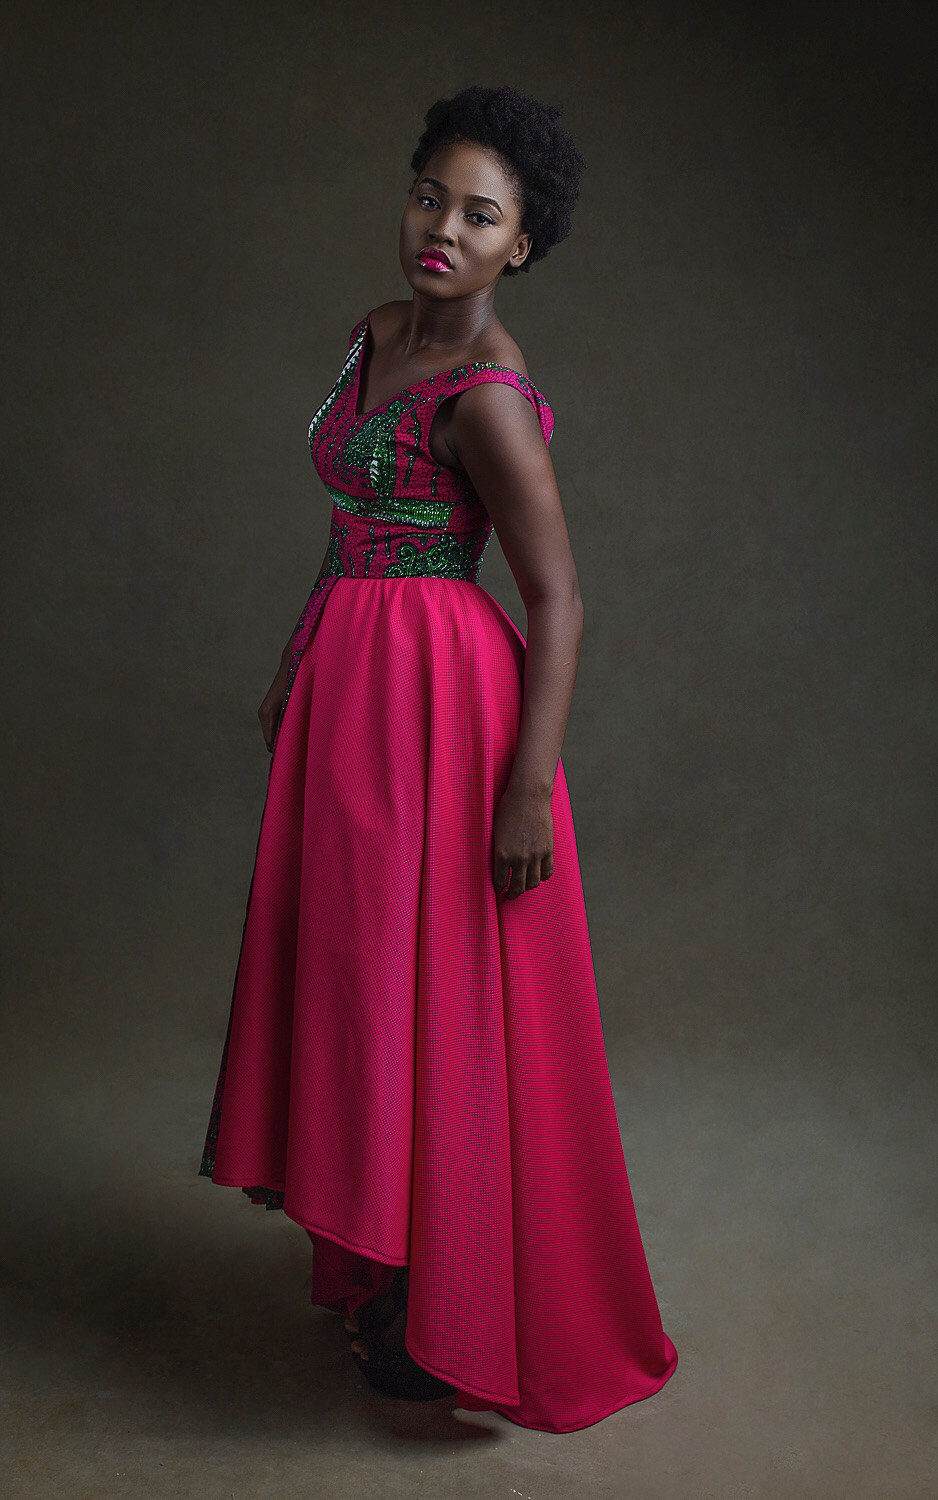 Rising Ghanaian Designer Beth Sante Launches Her Awura